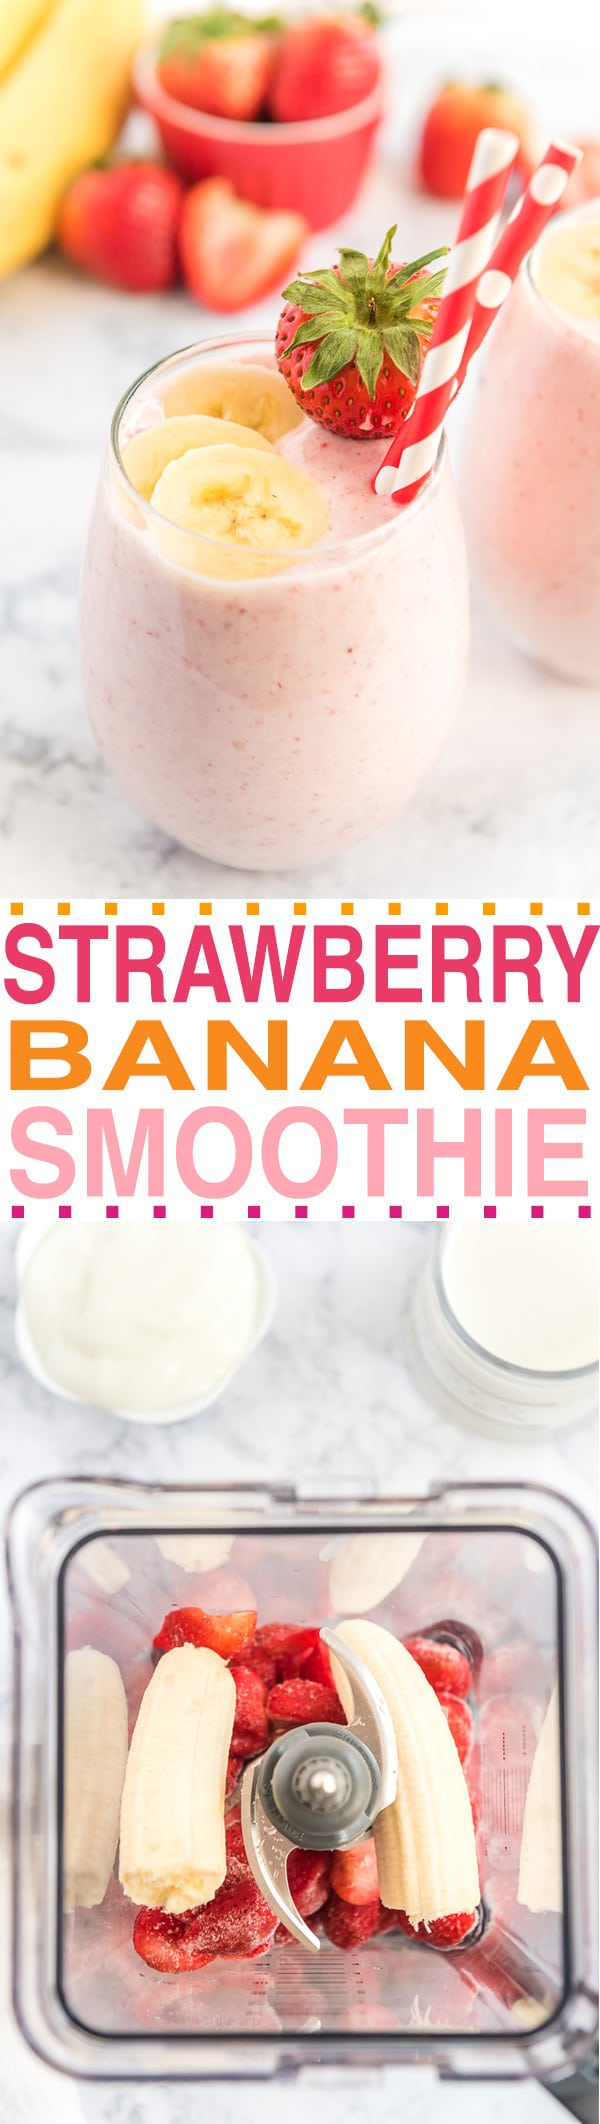 THE BEST STRAWBERRY BANANA SMOOTHIE RECIPE